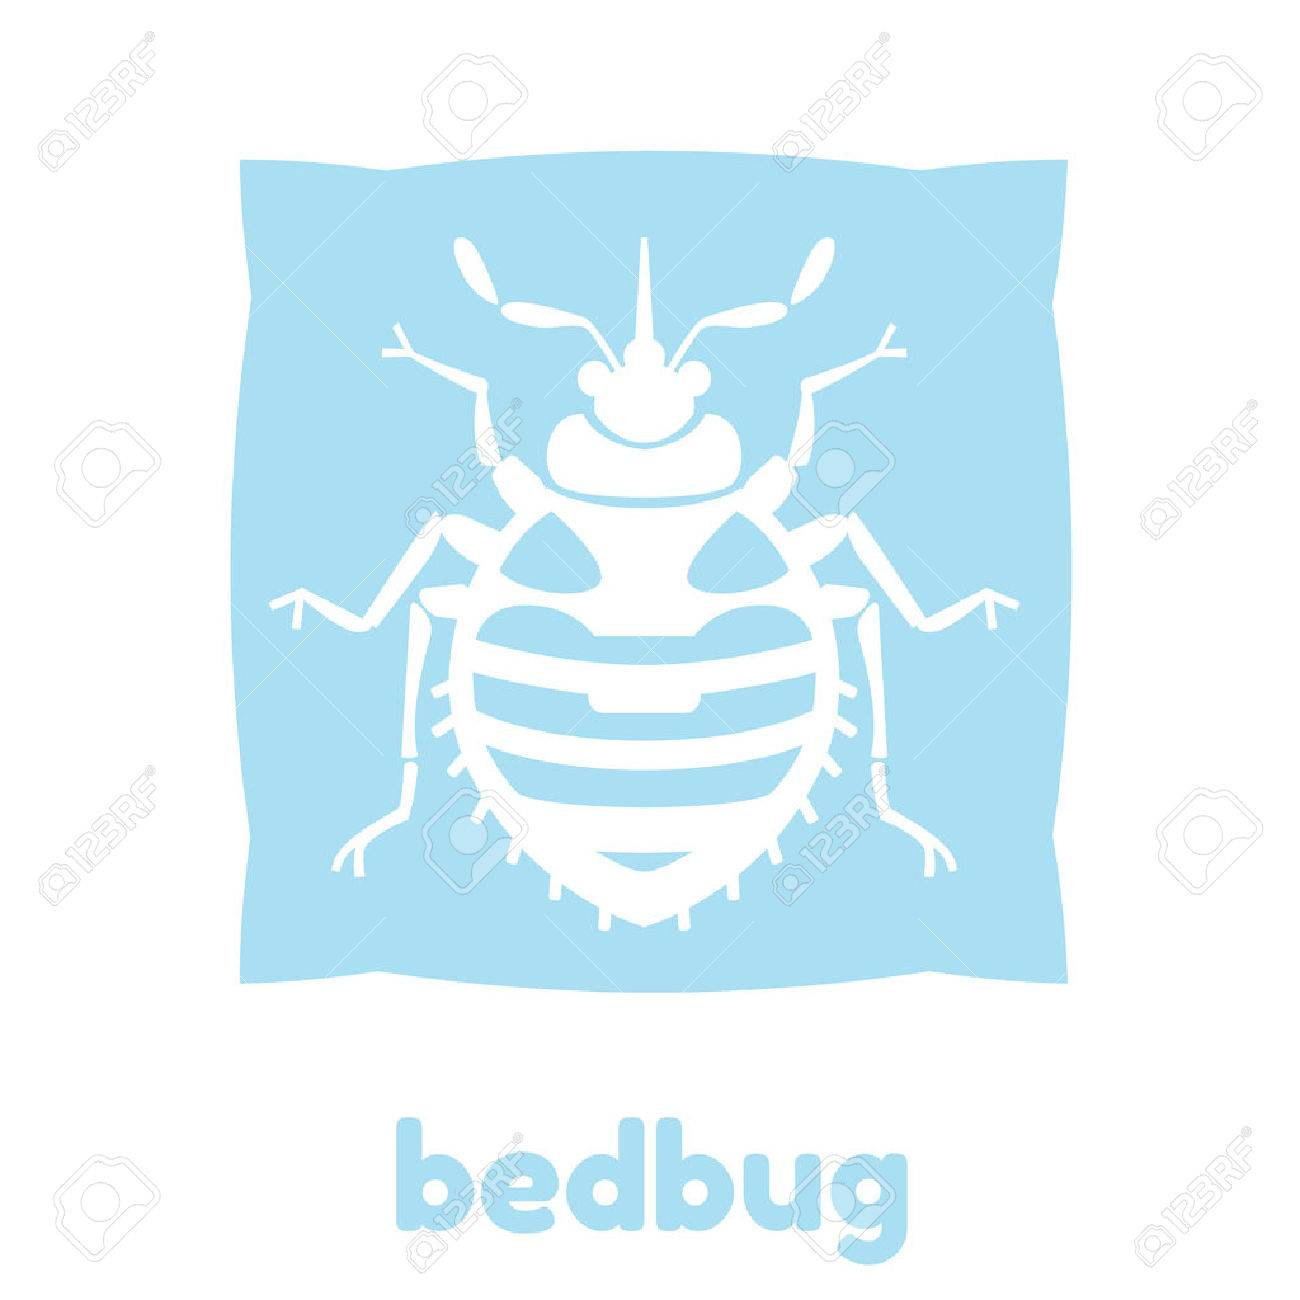 Home bedbug vector illustration - set of household pests in pure style - 51169491